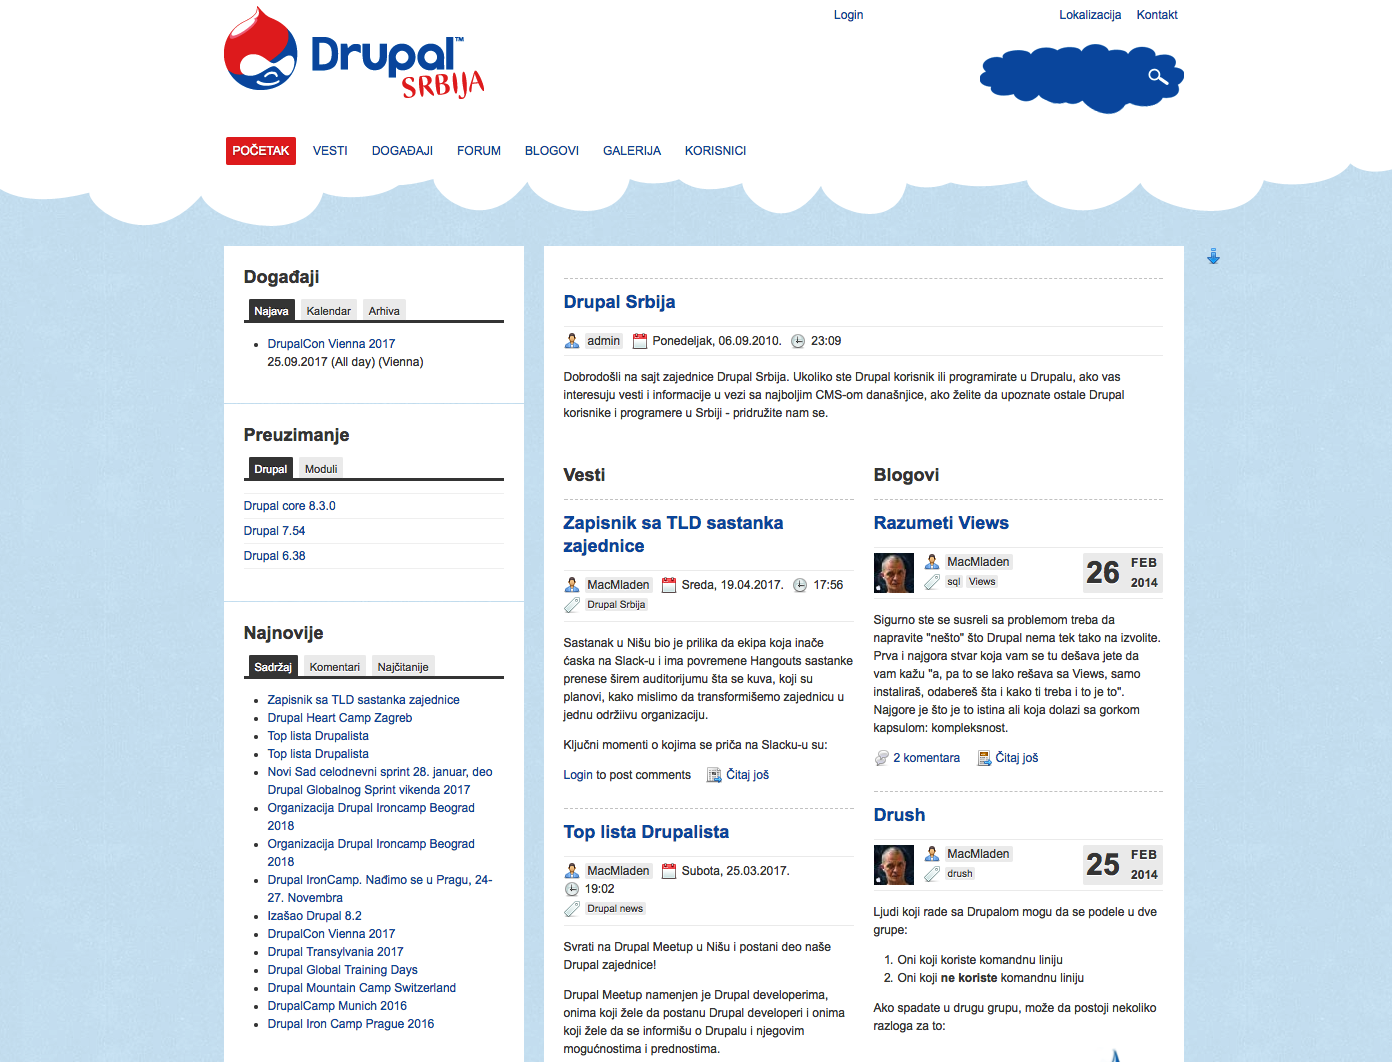 Old drupal.rs site